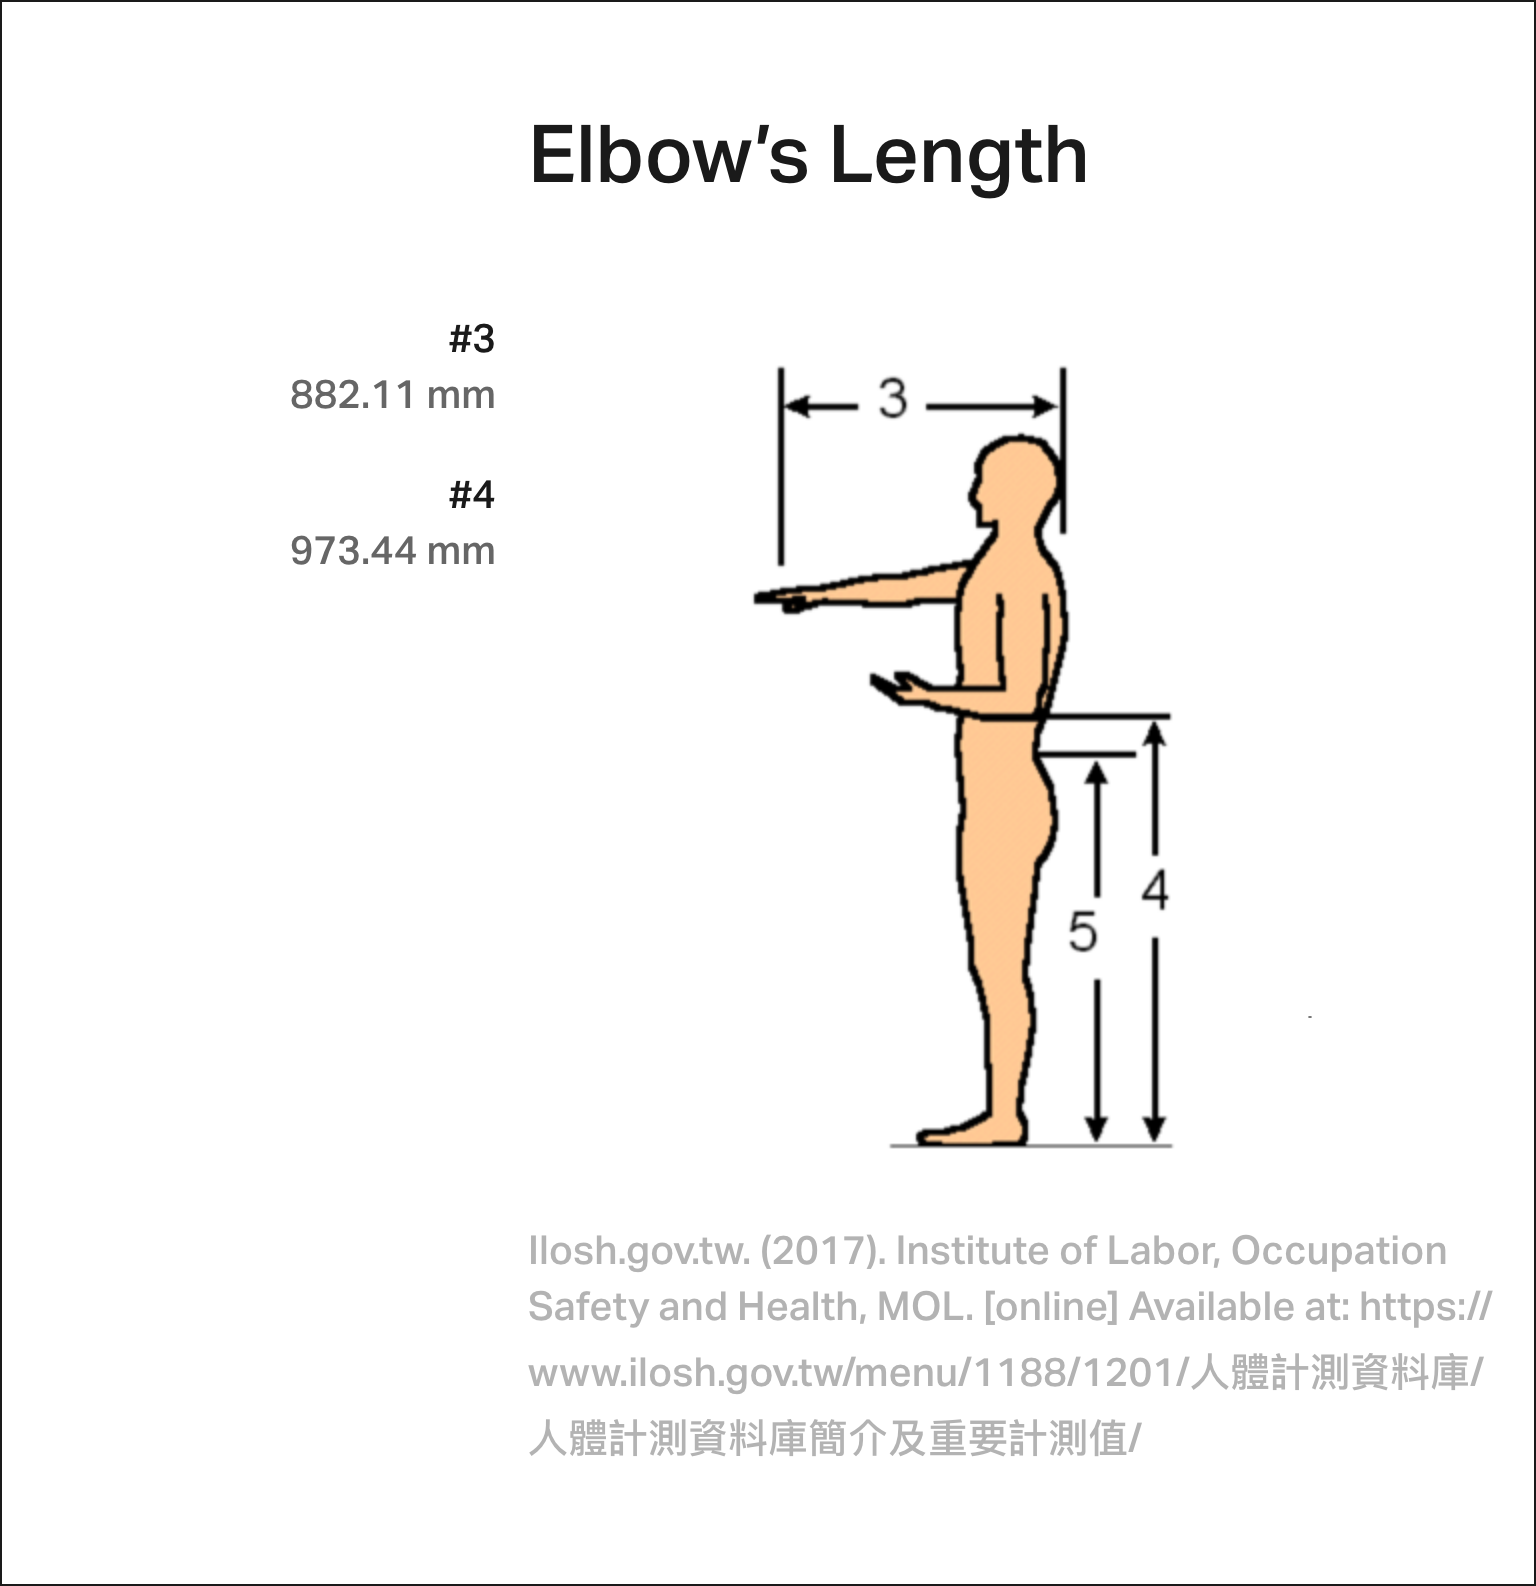 People using their digital devices must find elbow's length